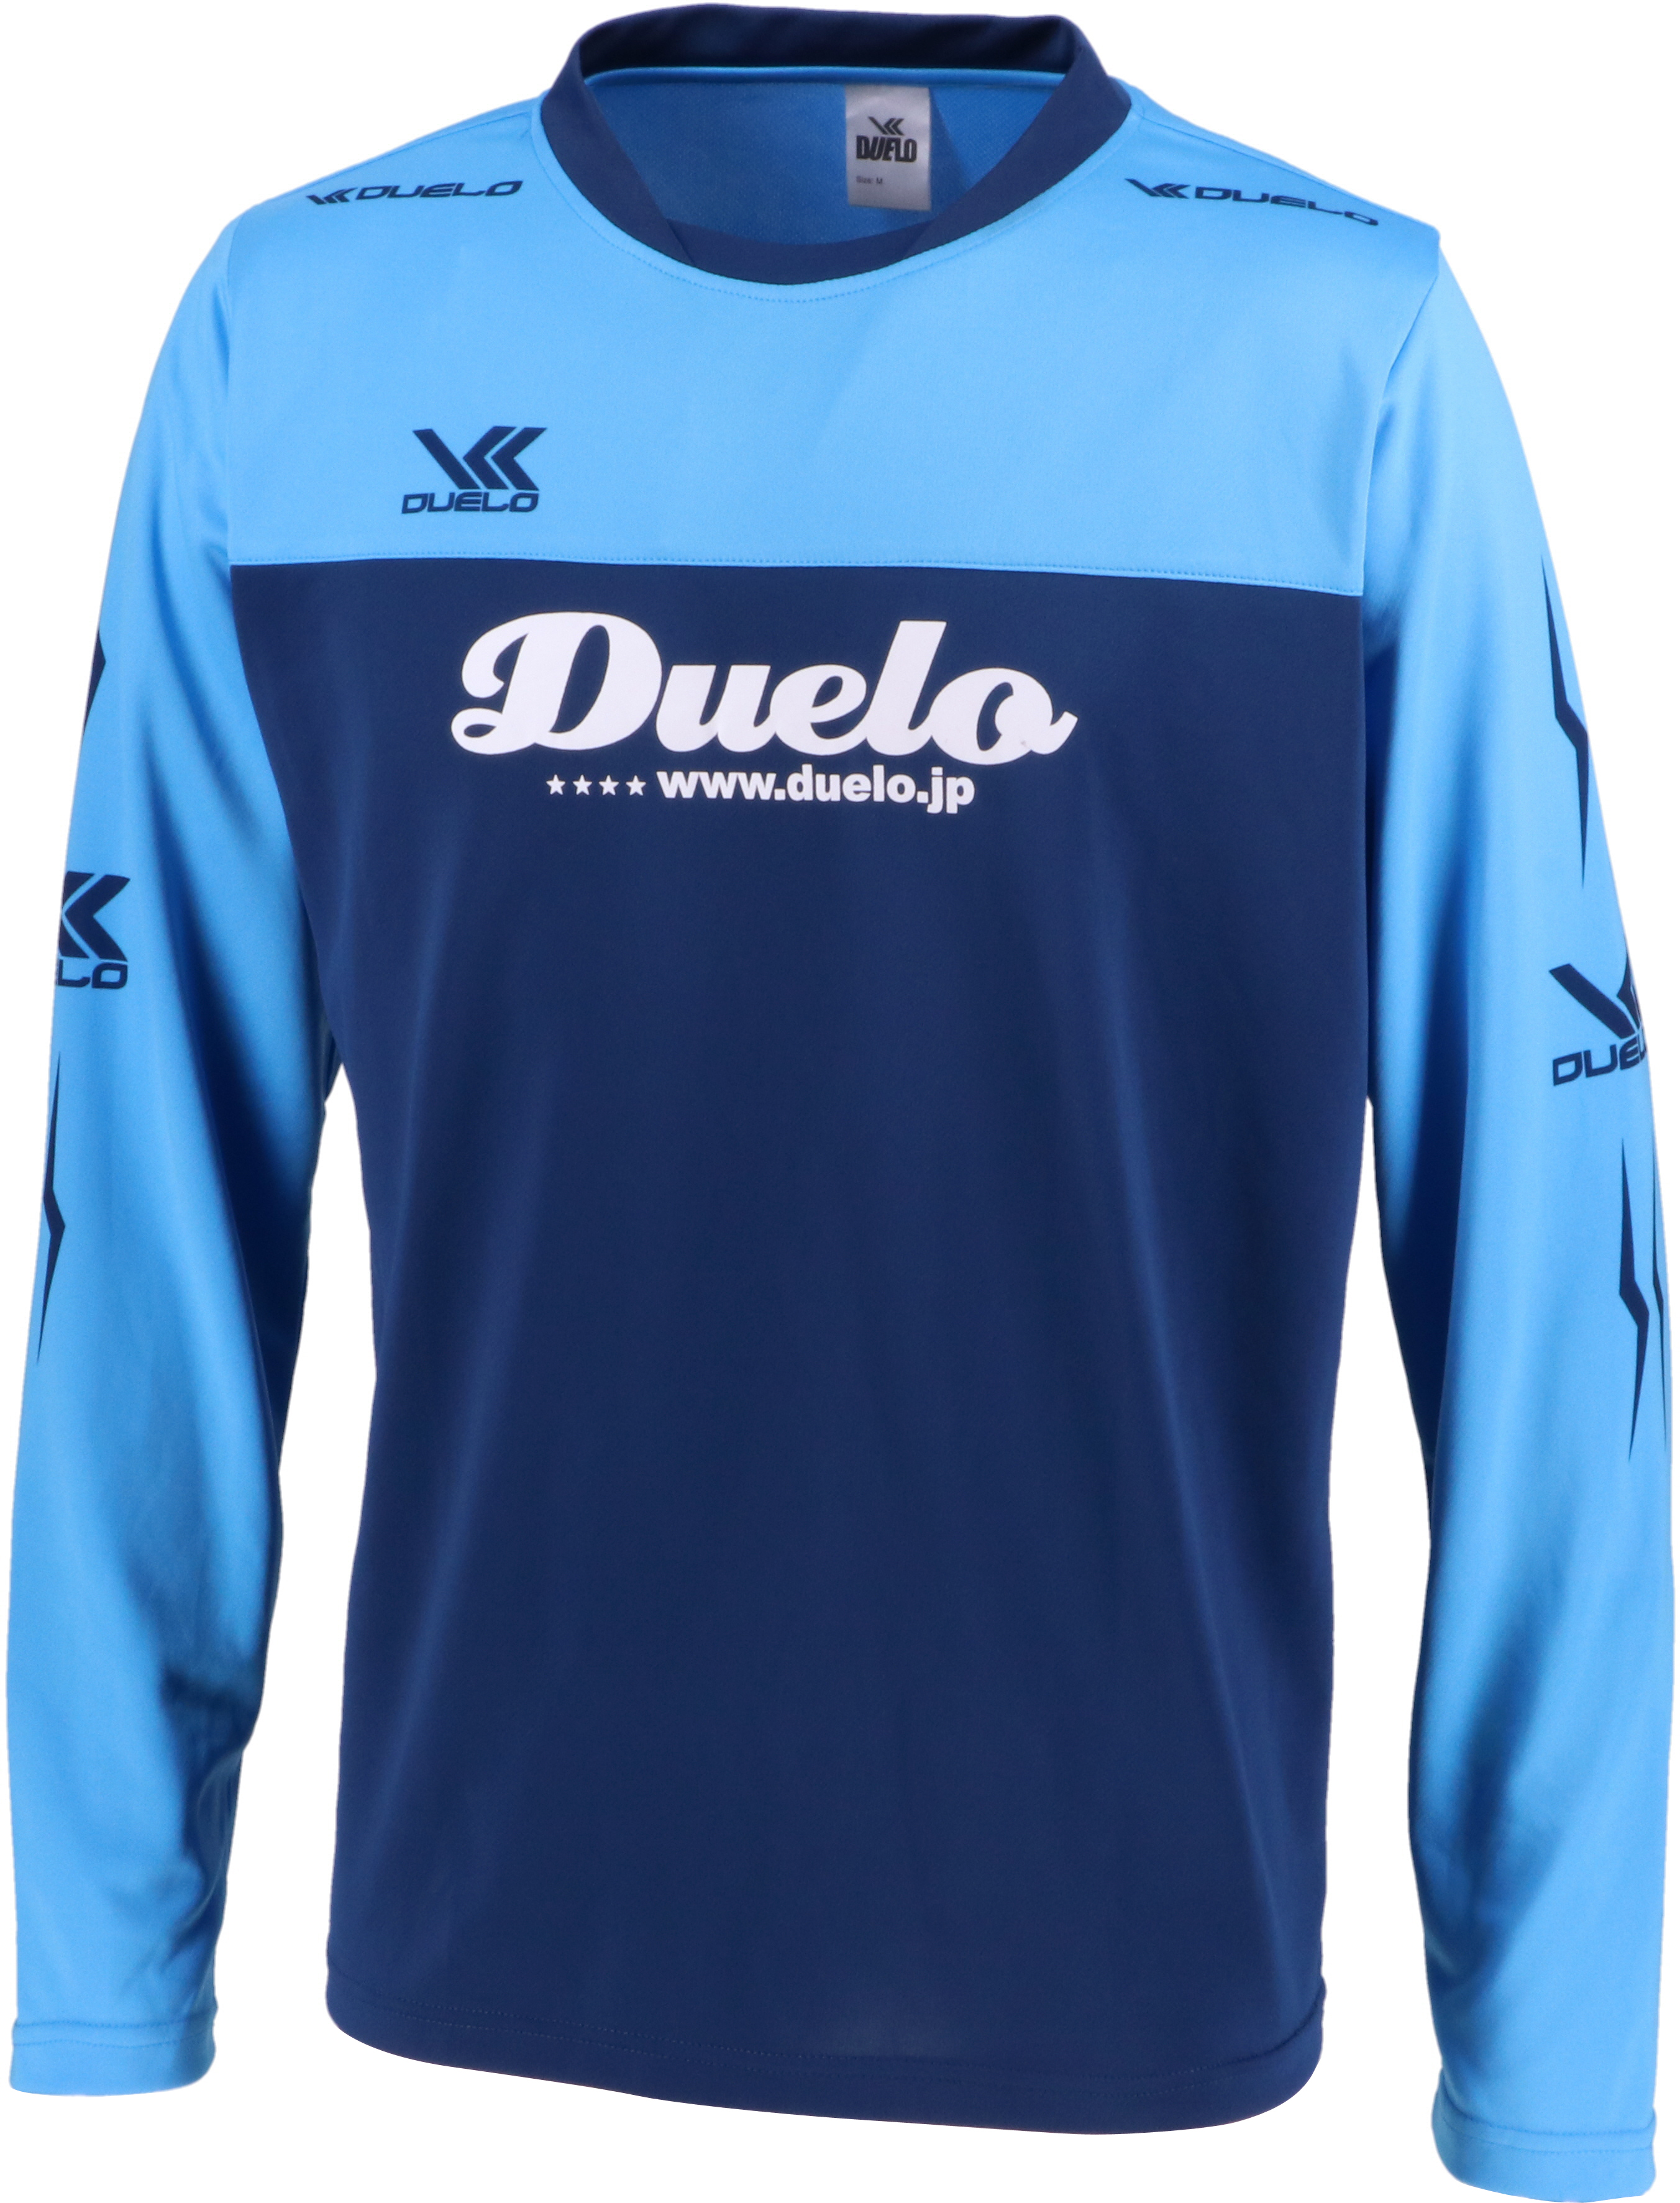 19020 Duelo Logo Long Practice Shirt  NVY/TRQ